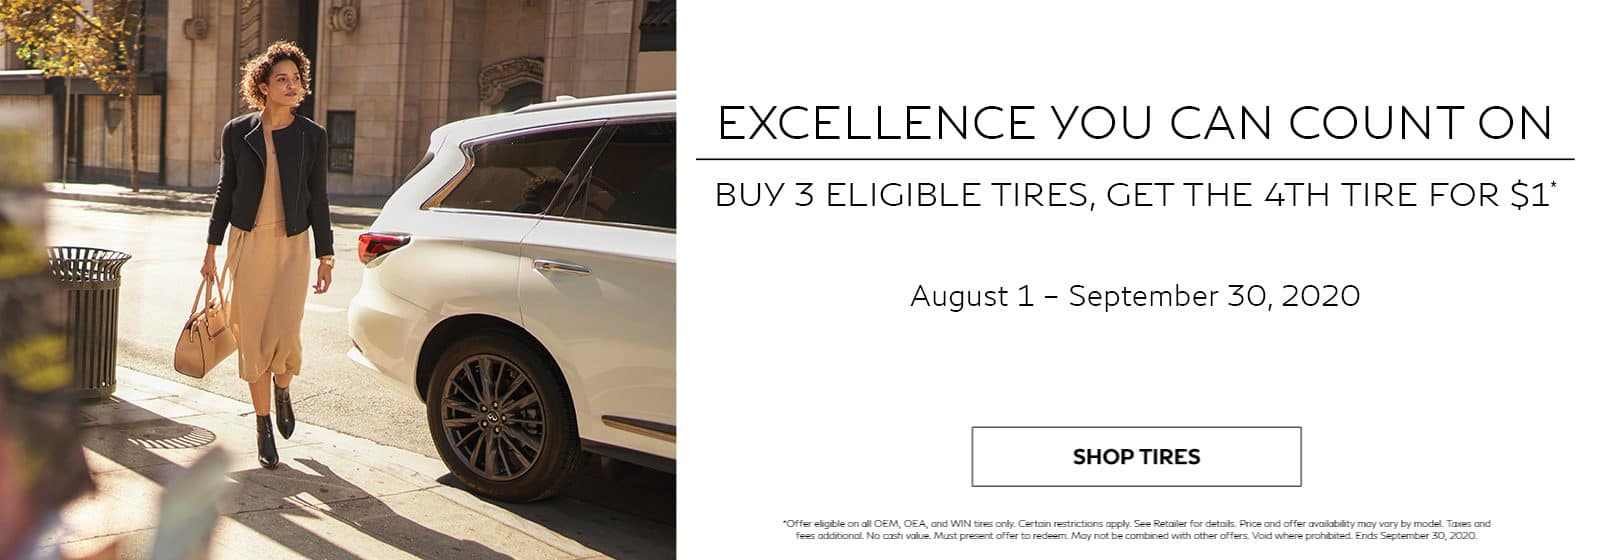 Excellence you can count on. Buy 3 Eligible tires, get the 4th tire for $1. Offer ends September 30, 2020. Restrictions may apply. See retailer for complete details.